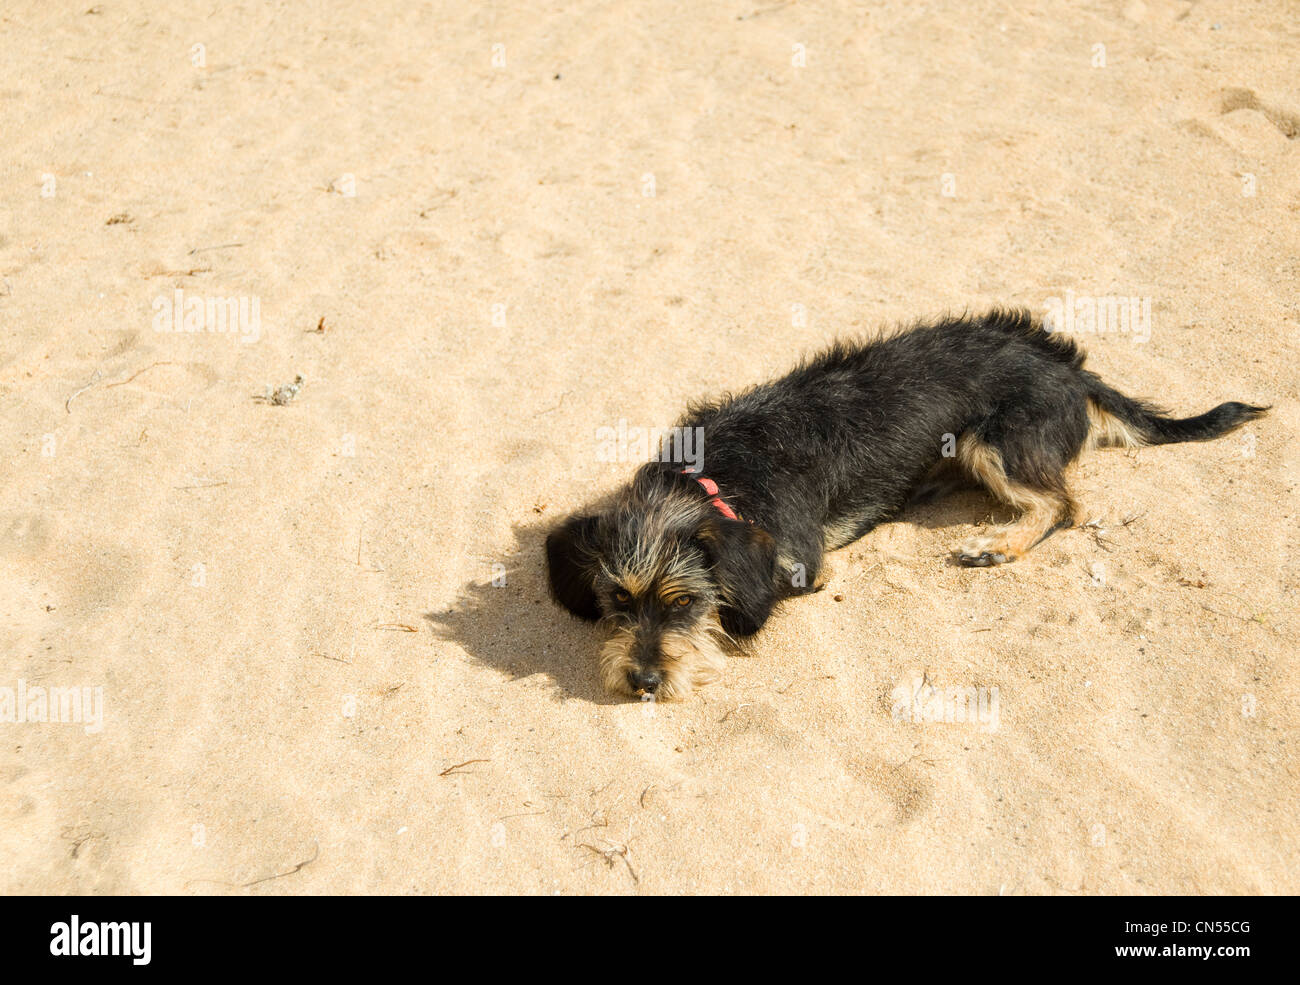 Very attractive long haired terrier dog dlying on beach looking cute, Spain - Stock Image